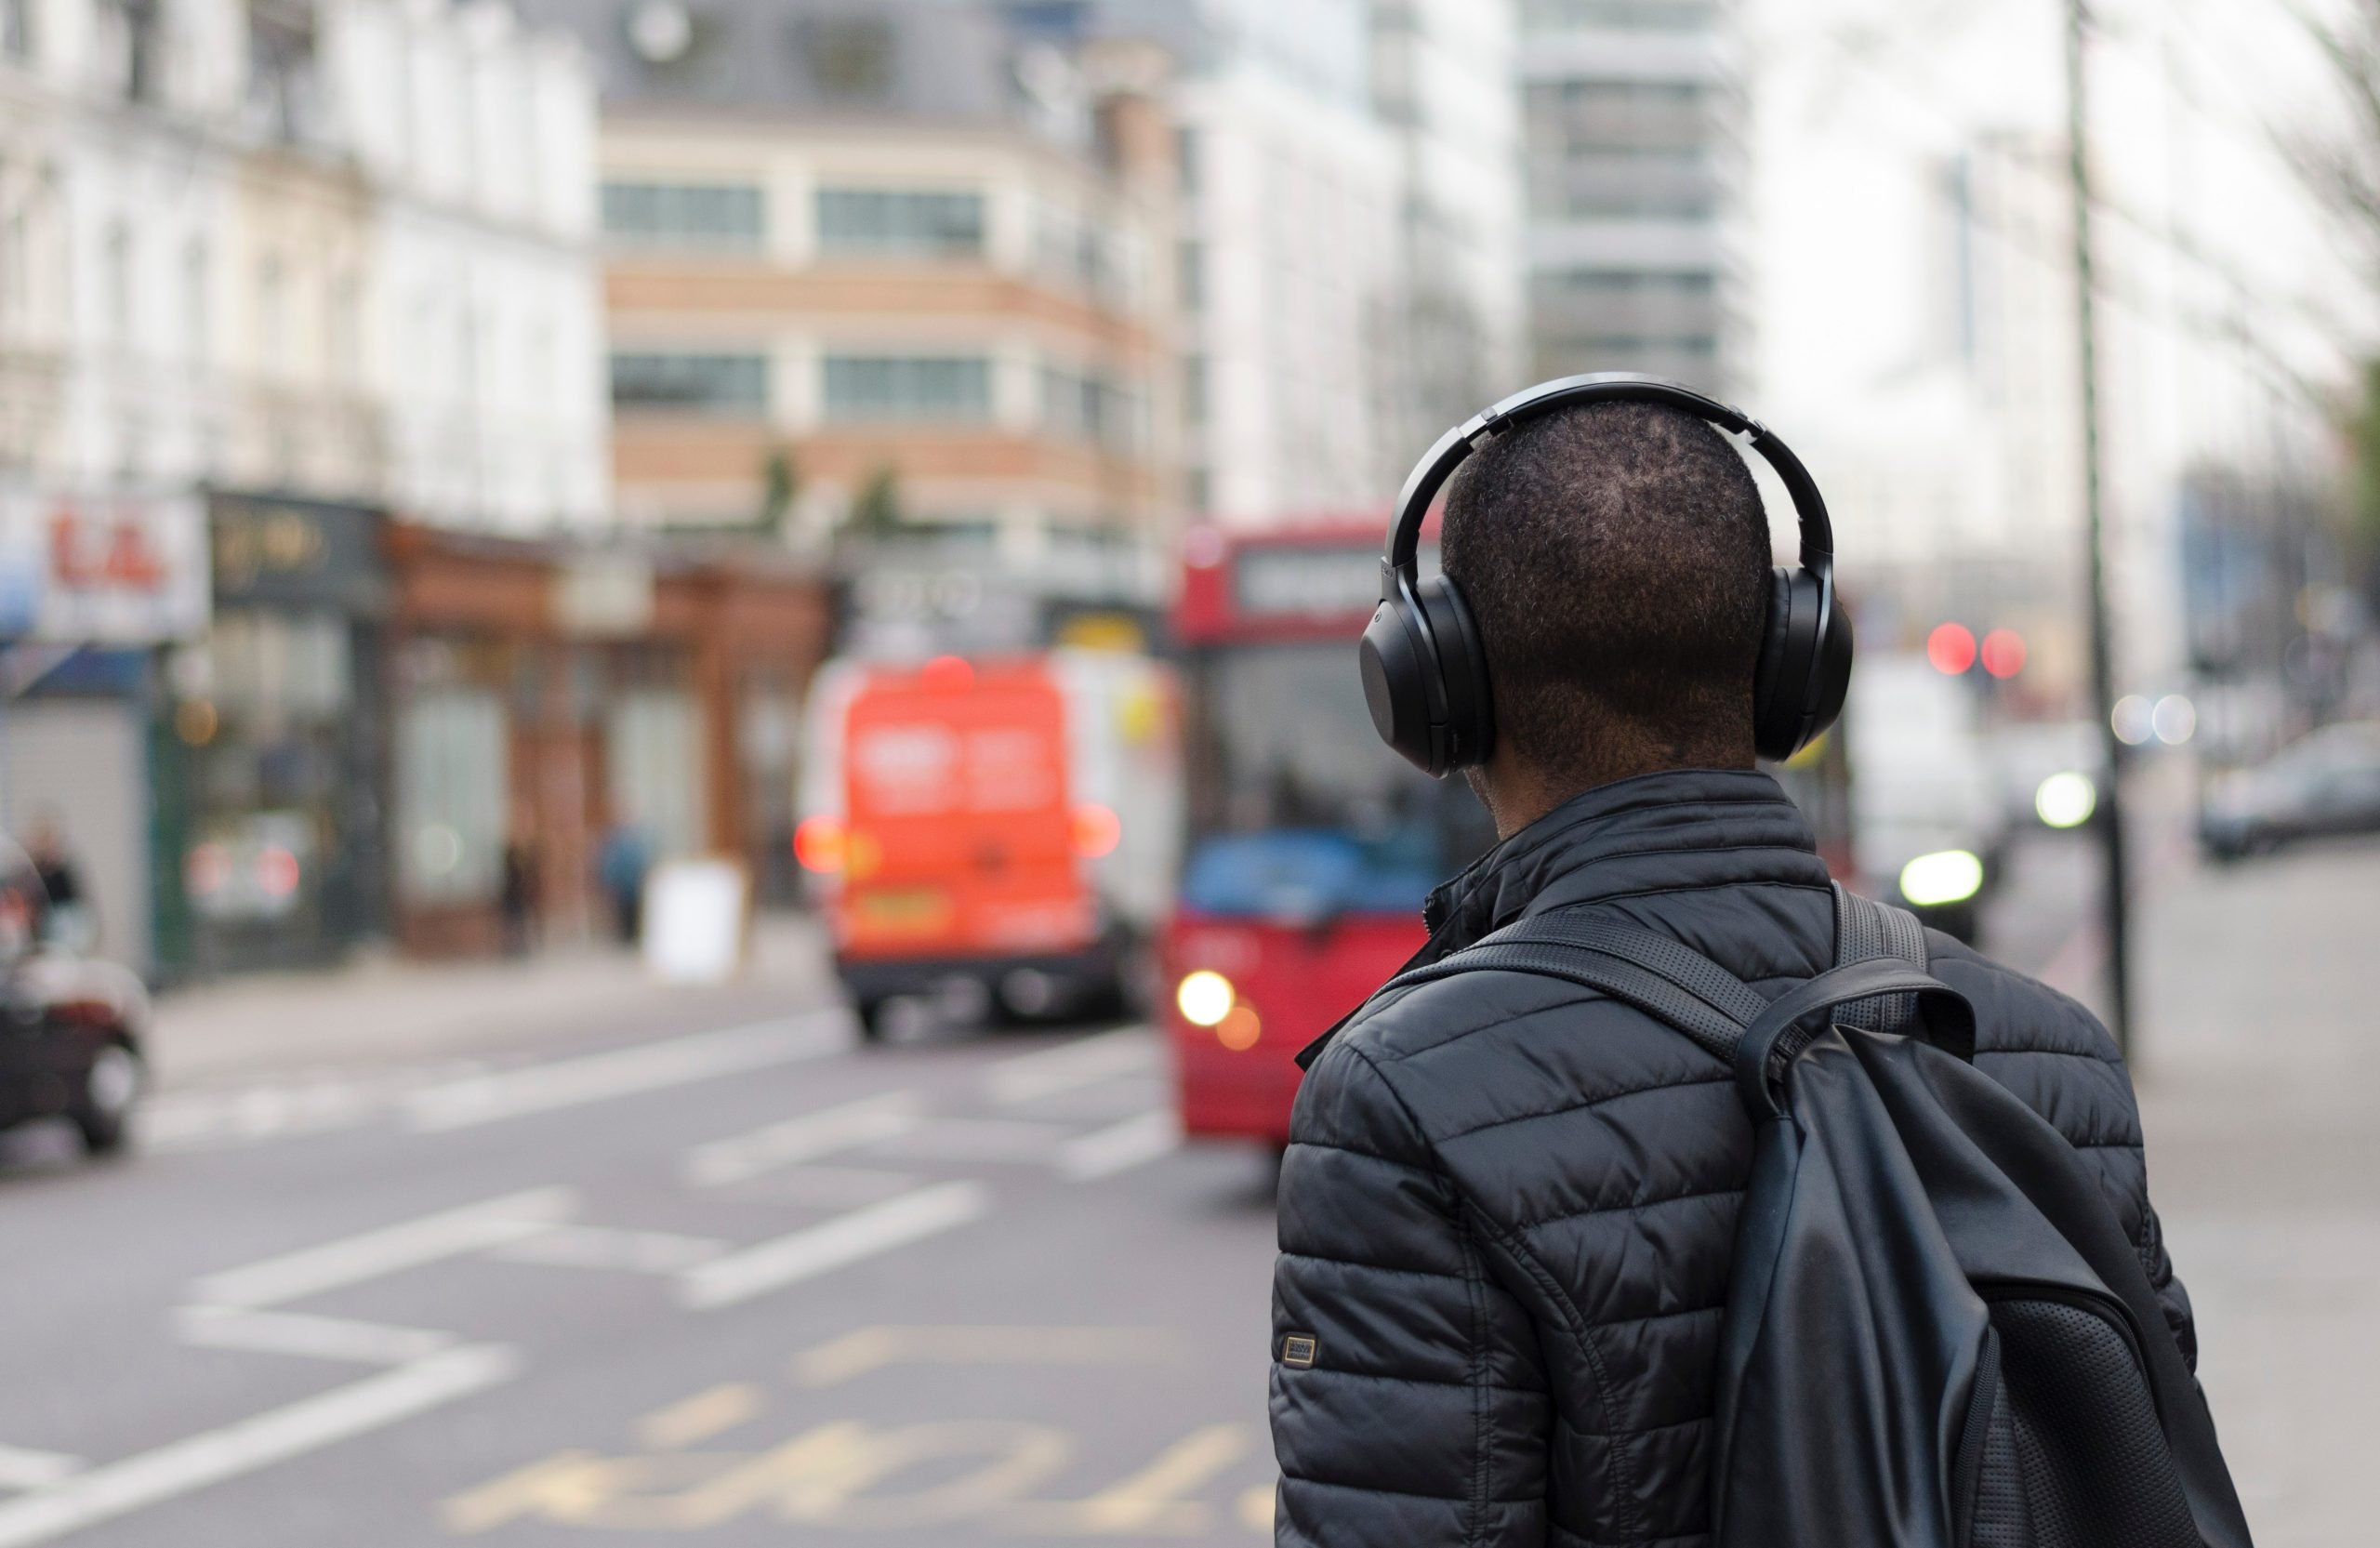 The 5 Best Personal Audio Gear for the Holidays